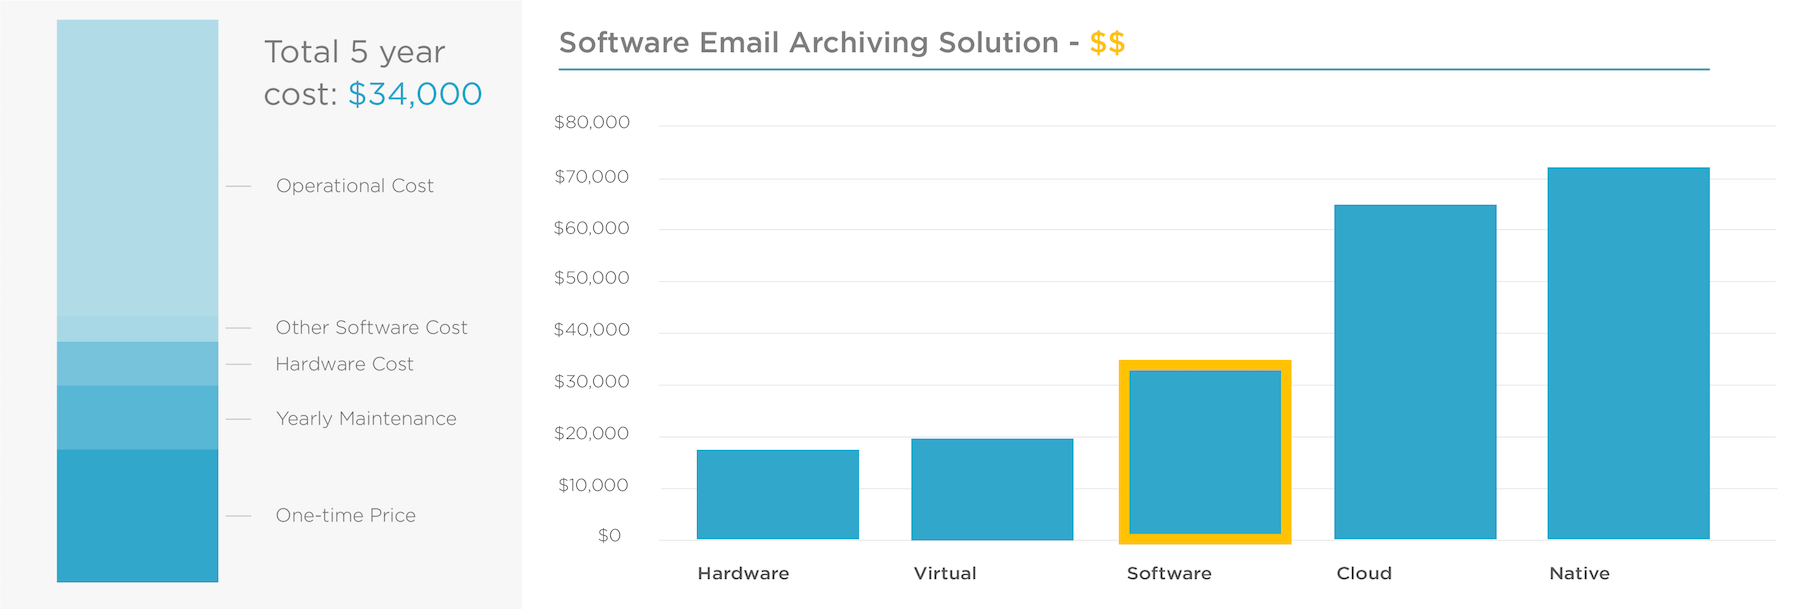 software email archiving solution pricing